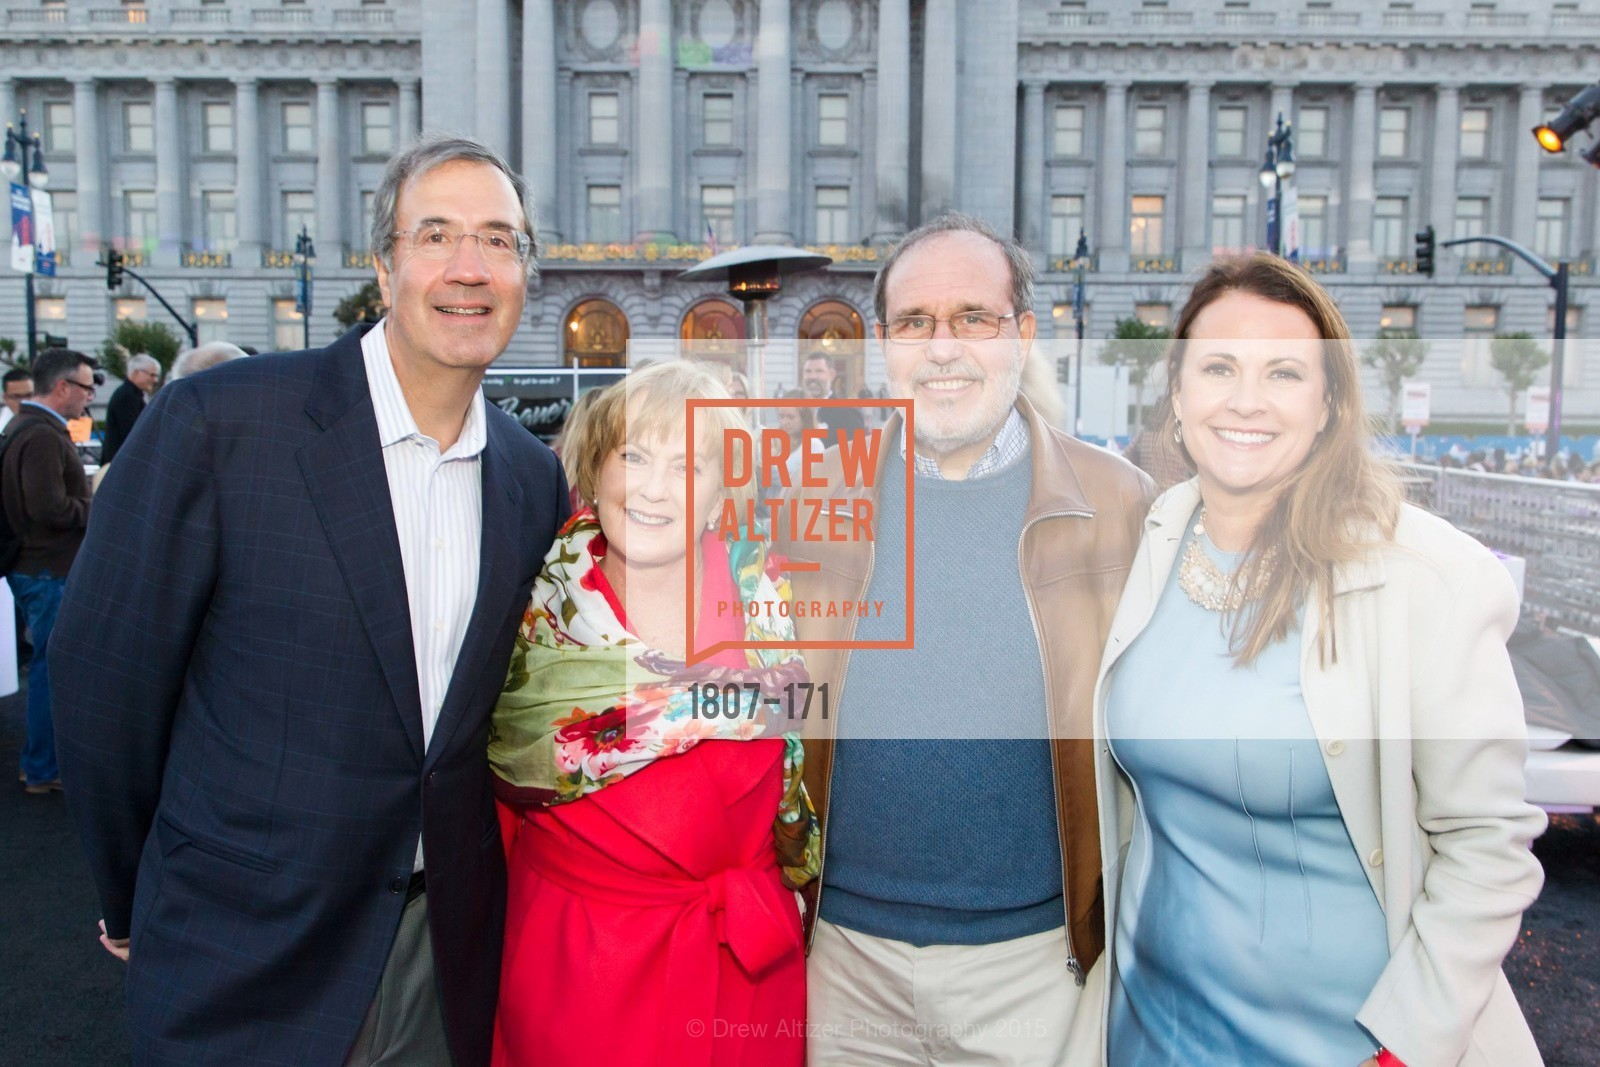 Fred Giafreda, Marie Lipman, Berry Lipman, Tanya Peterson, San Francisco City Hall Centennial Celebration, Civic Center Plaza, June 18th, 2015,Drew Altizer, Drew Altizer Photography, full-service agency, private events, San Francisco photographer, photographer california